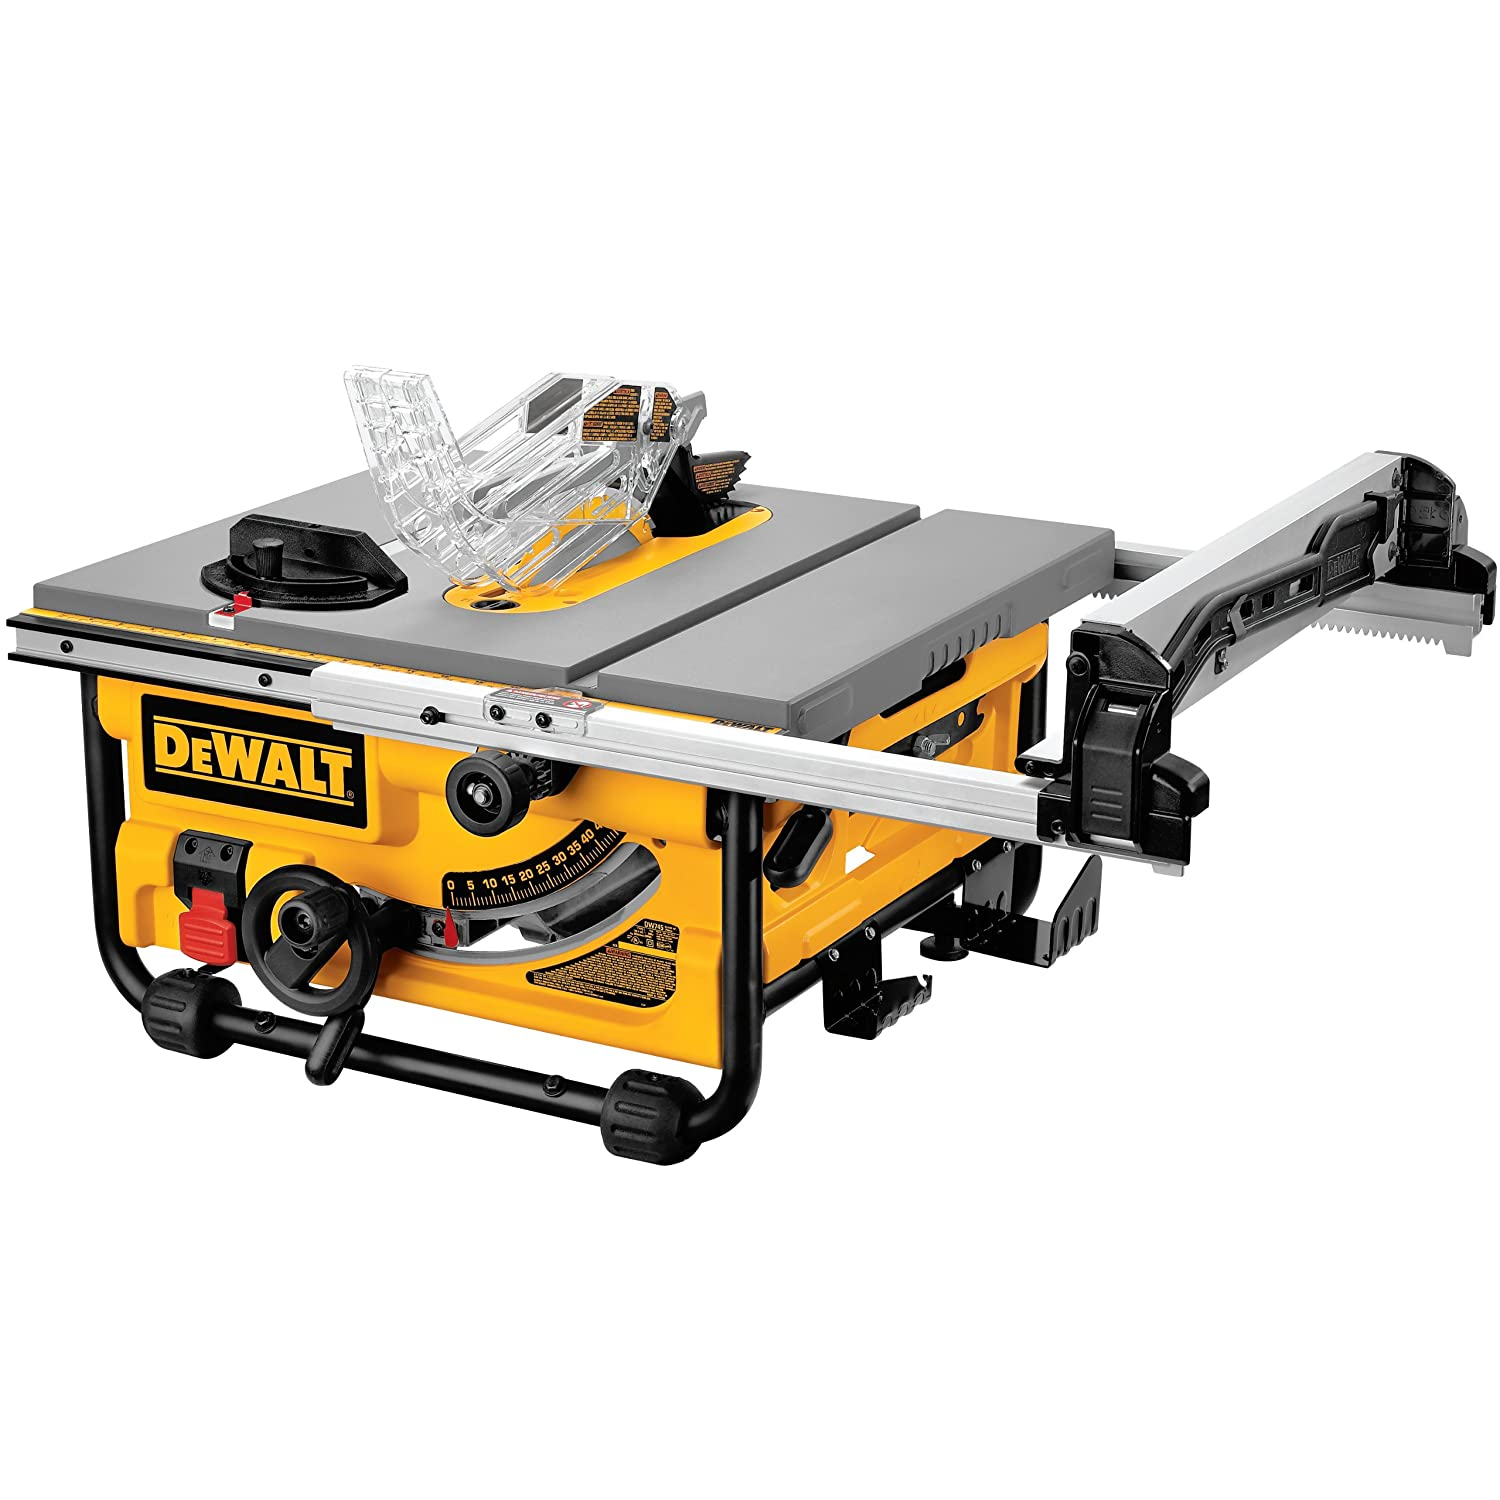 global inflowcomponent content p dewalt ebay cancel cordless s flexvolt table saw inflow res xr